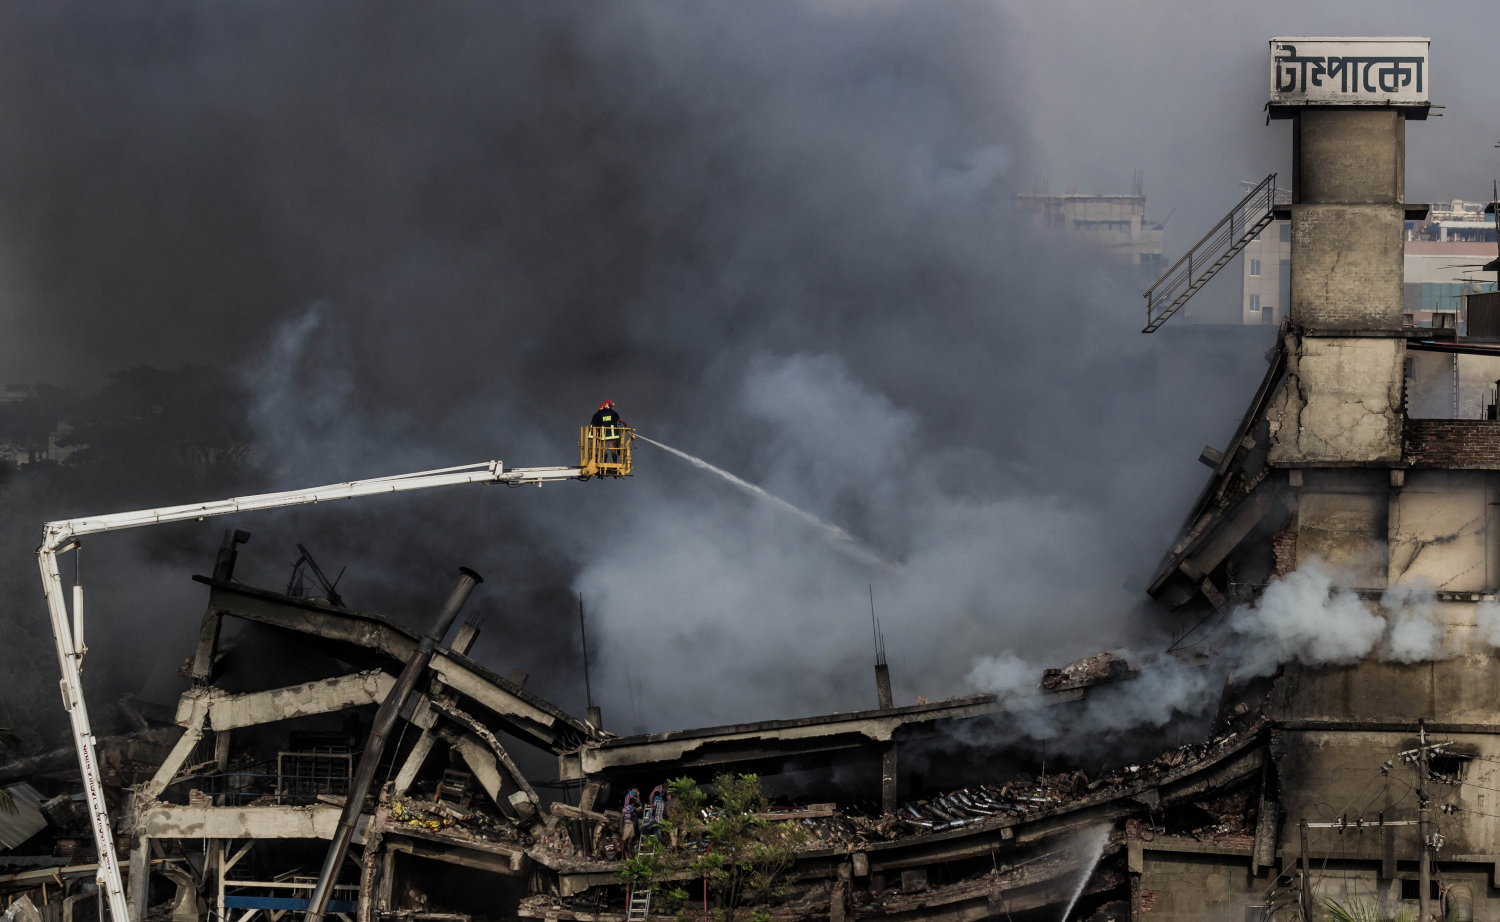 Image of the fire at Tampaco Foils Factory, Bangladesh, where at least 41 workers were killed.